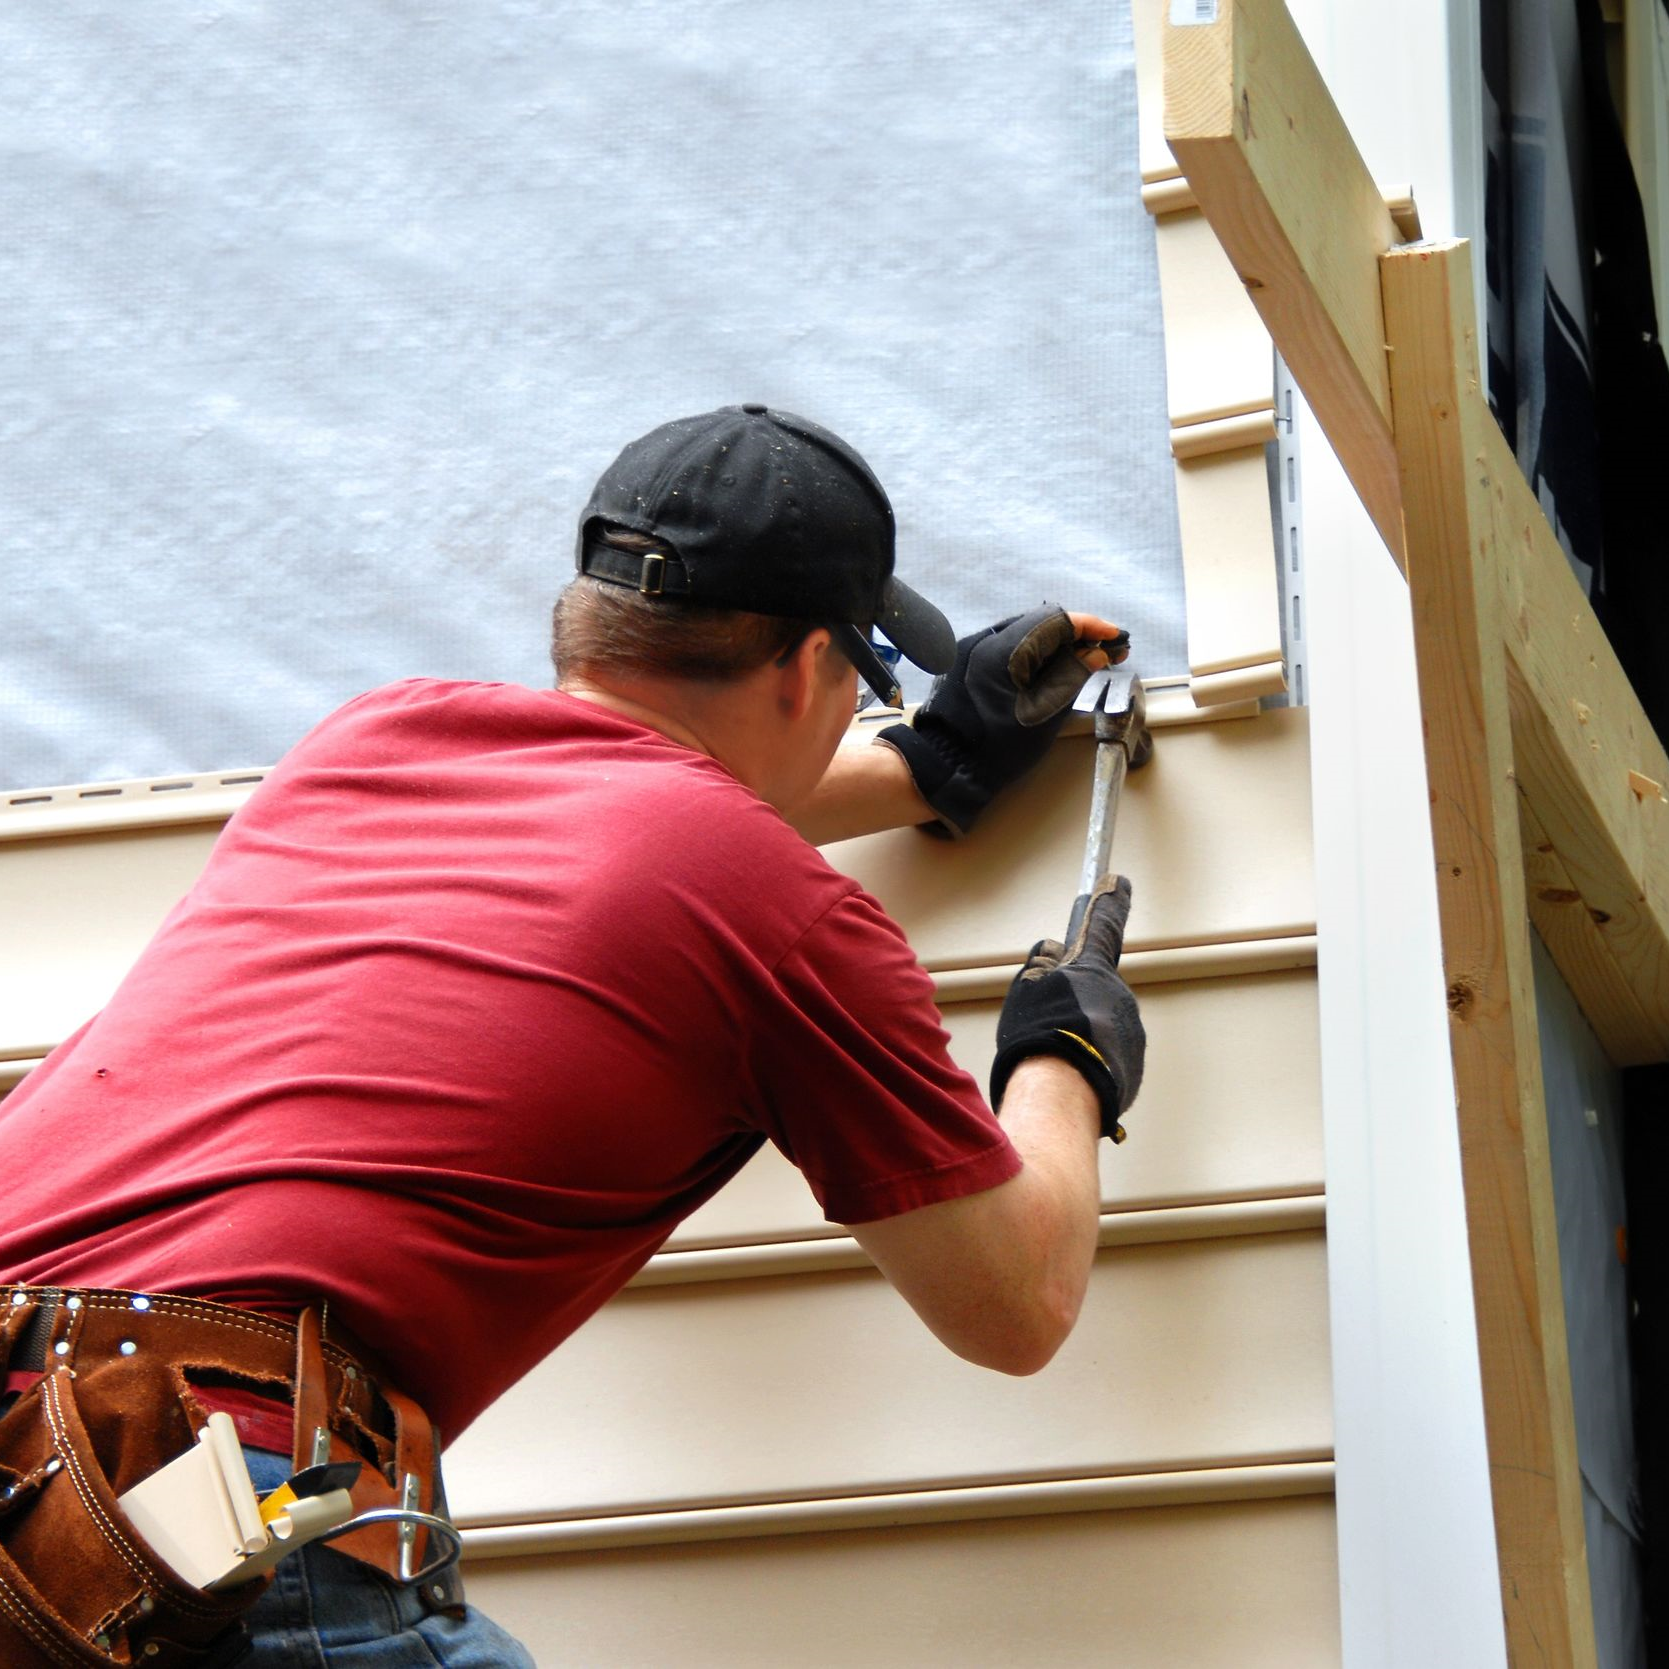 A roofer installing a siding